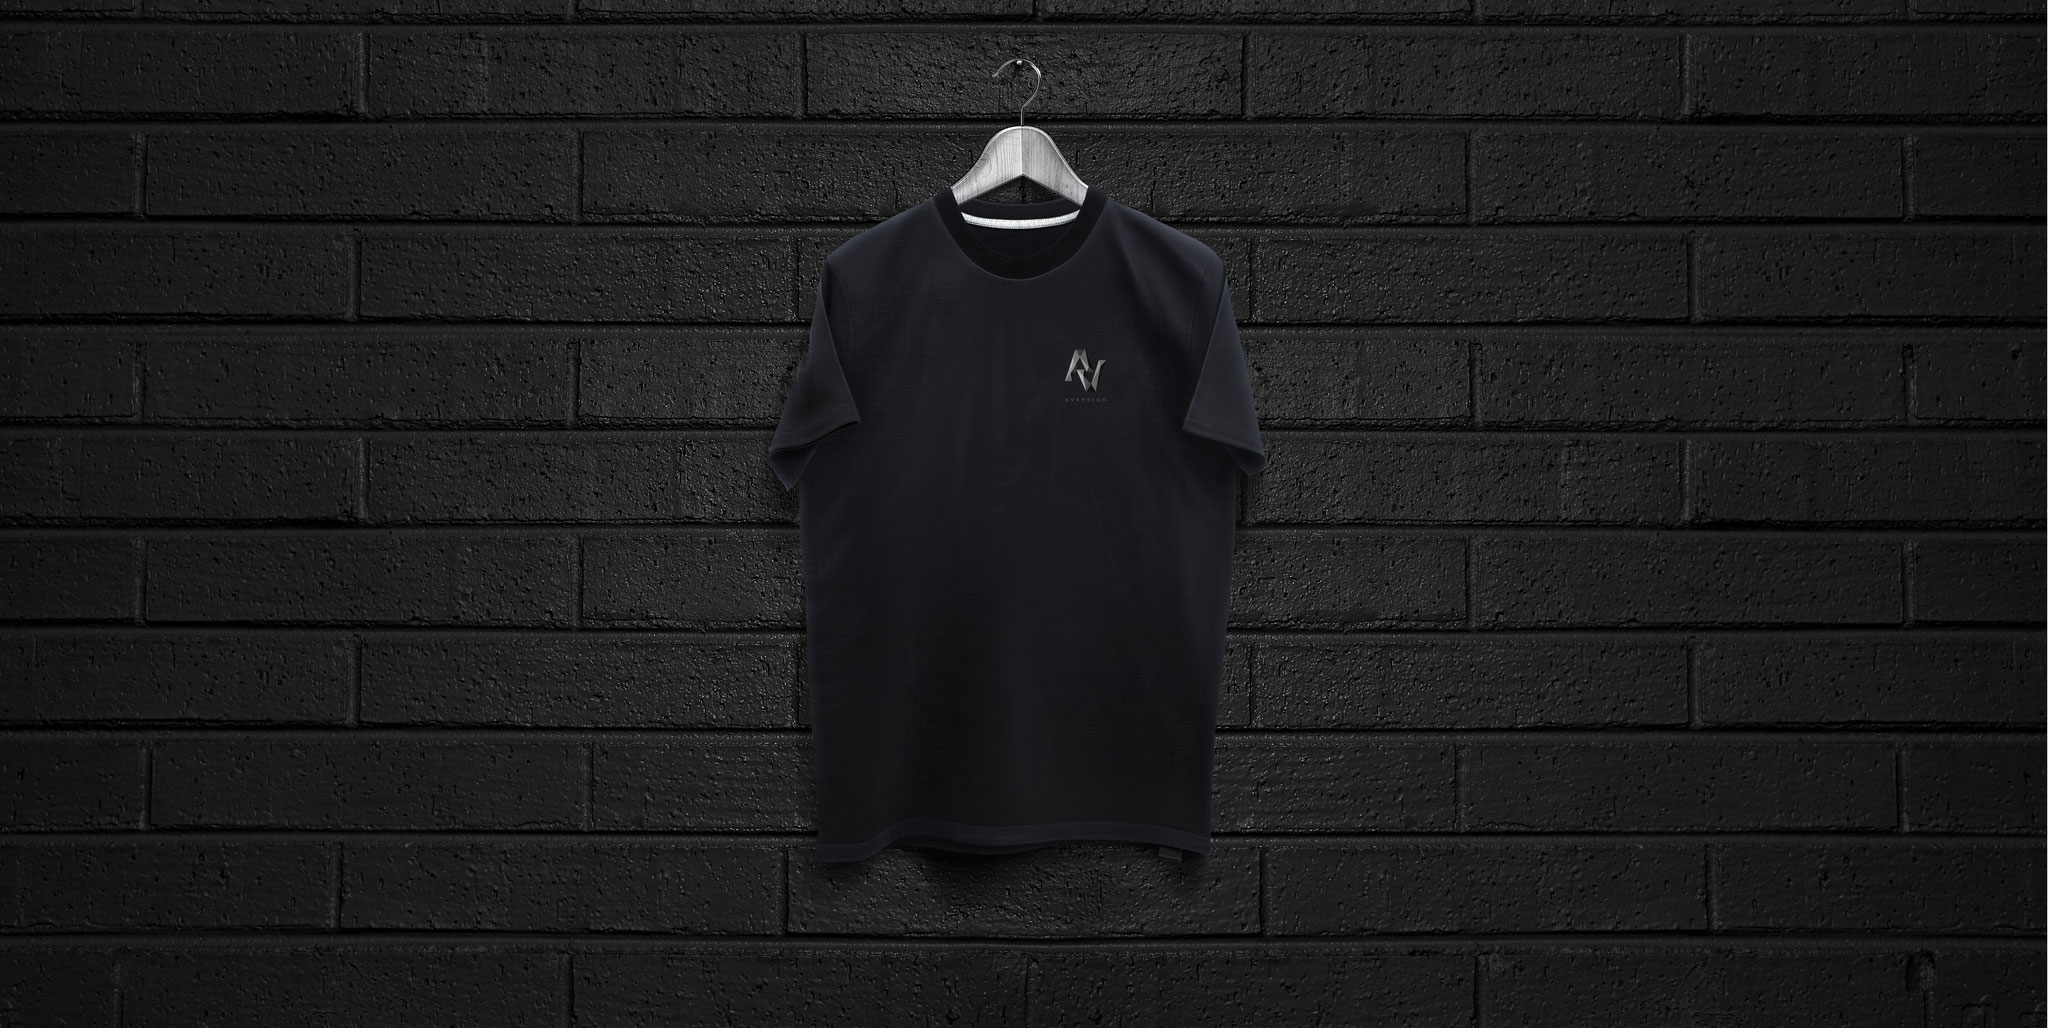 T-SHIRT BLACK | AVERSION-LOGO BRUST KLEIN